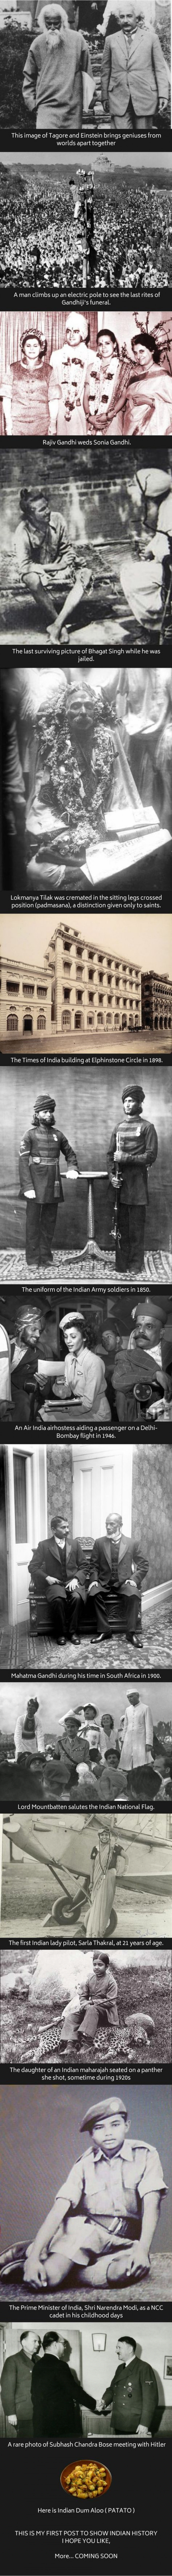 14 Old Indian Photographs That Will Make You See India In A Different Way